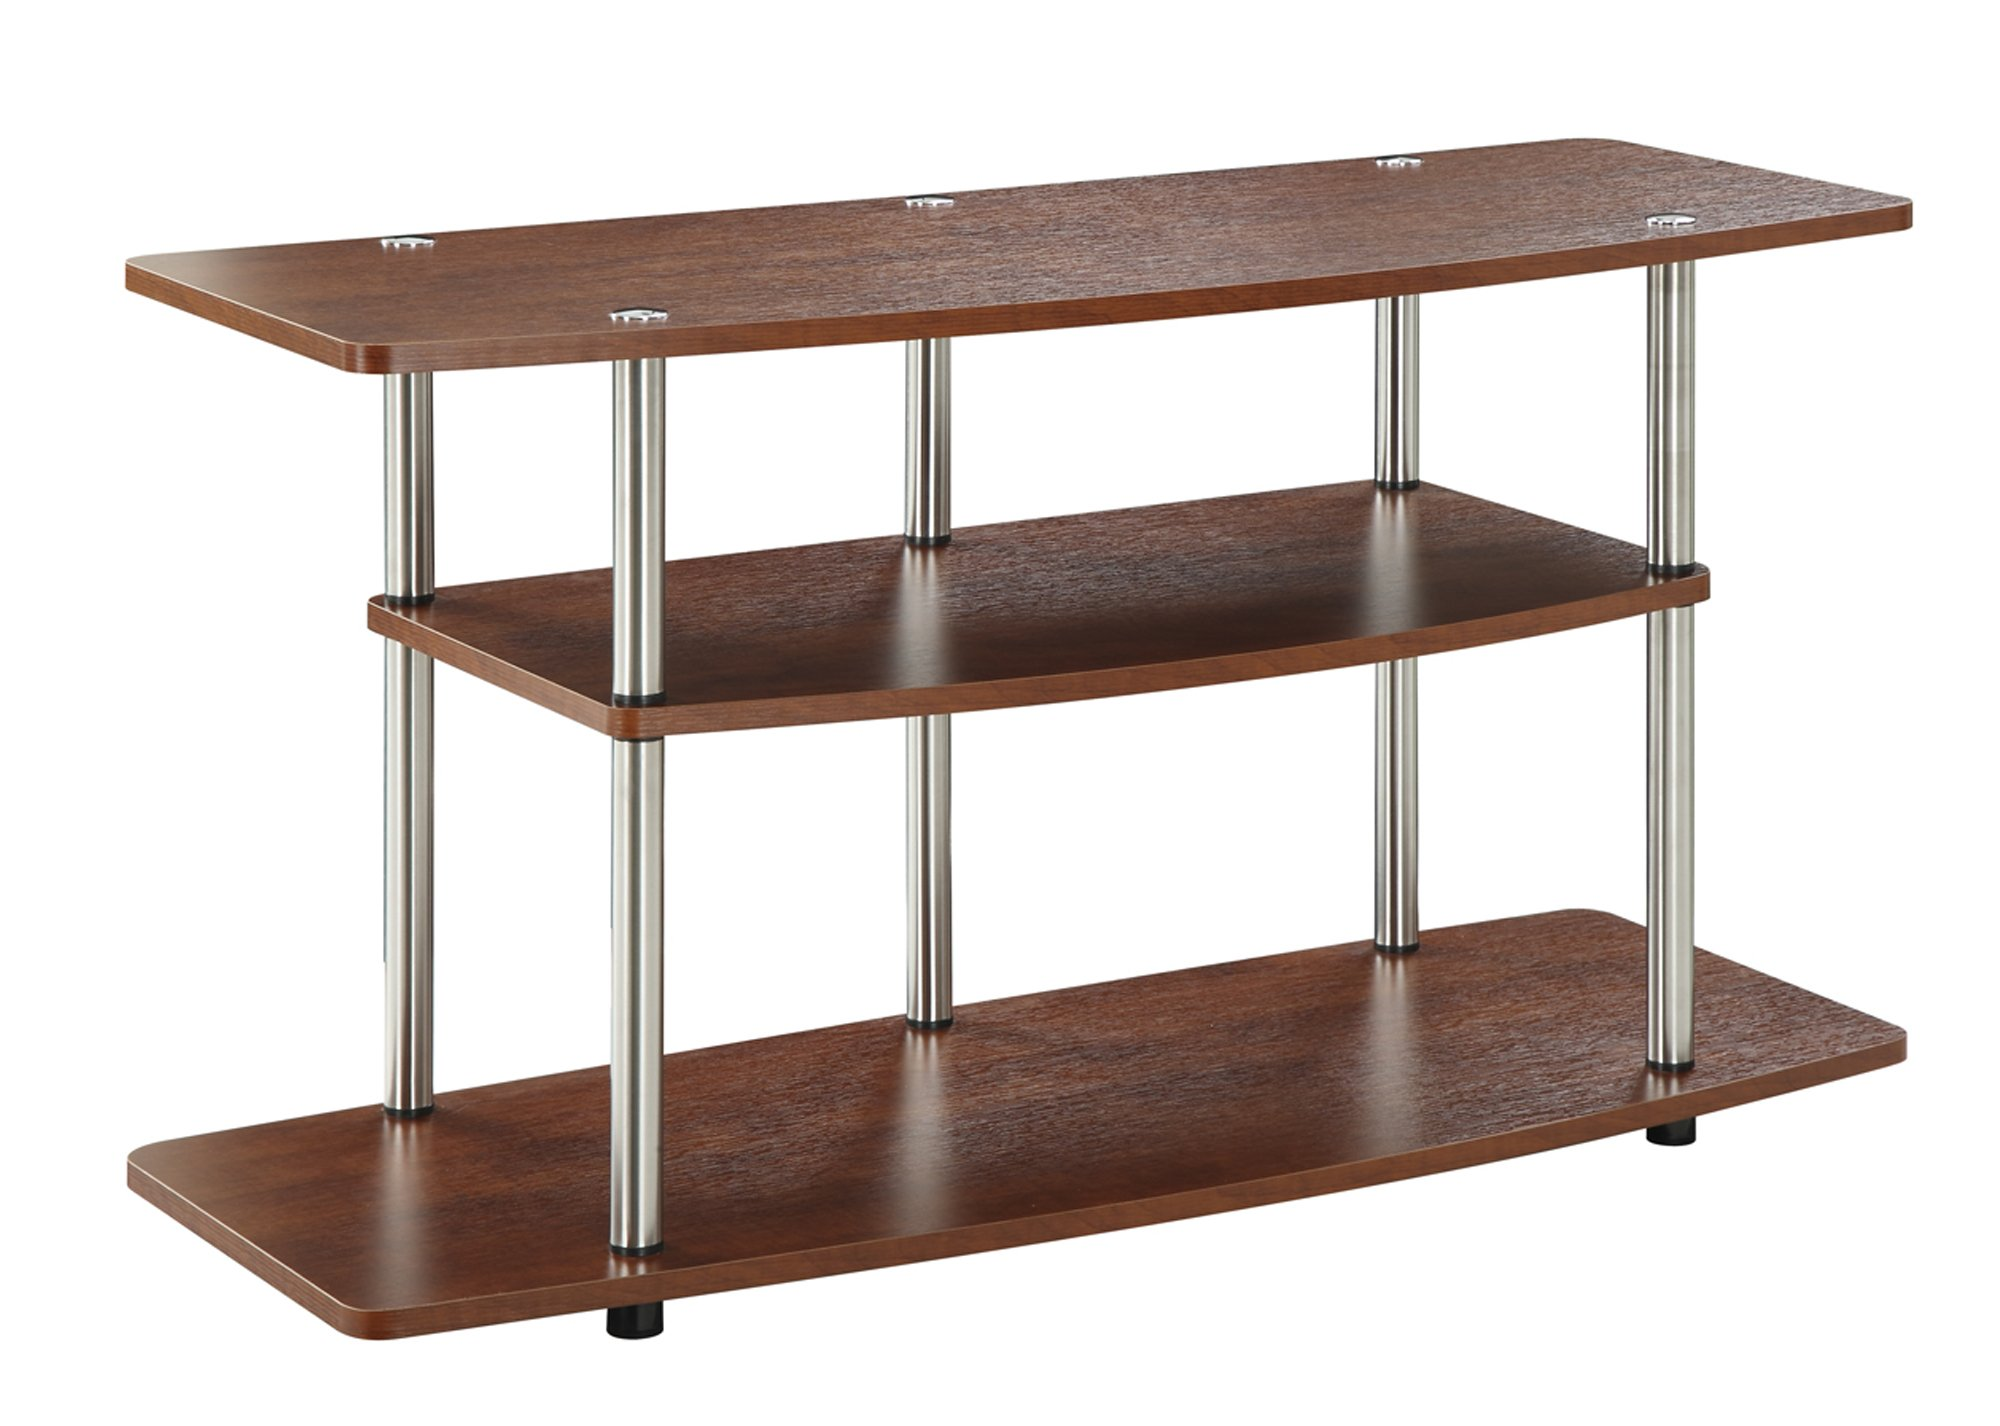 Tv Stand Storage 3 Tier Wide 42 Inch Lcd Plasma Screen Stainless